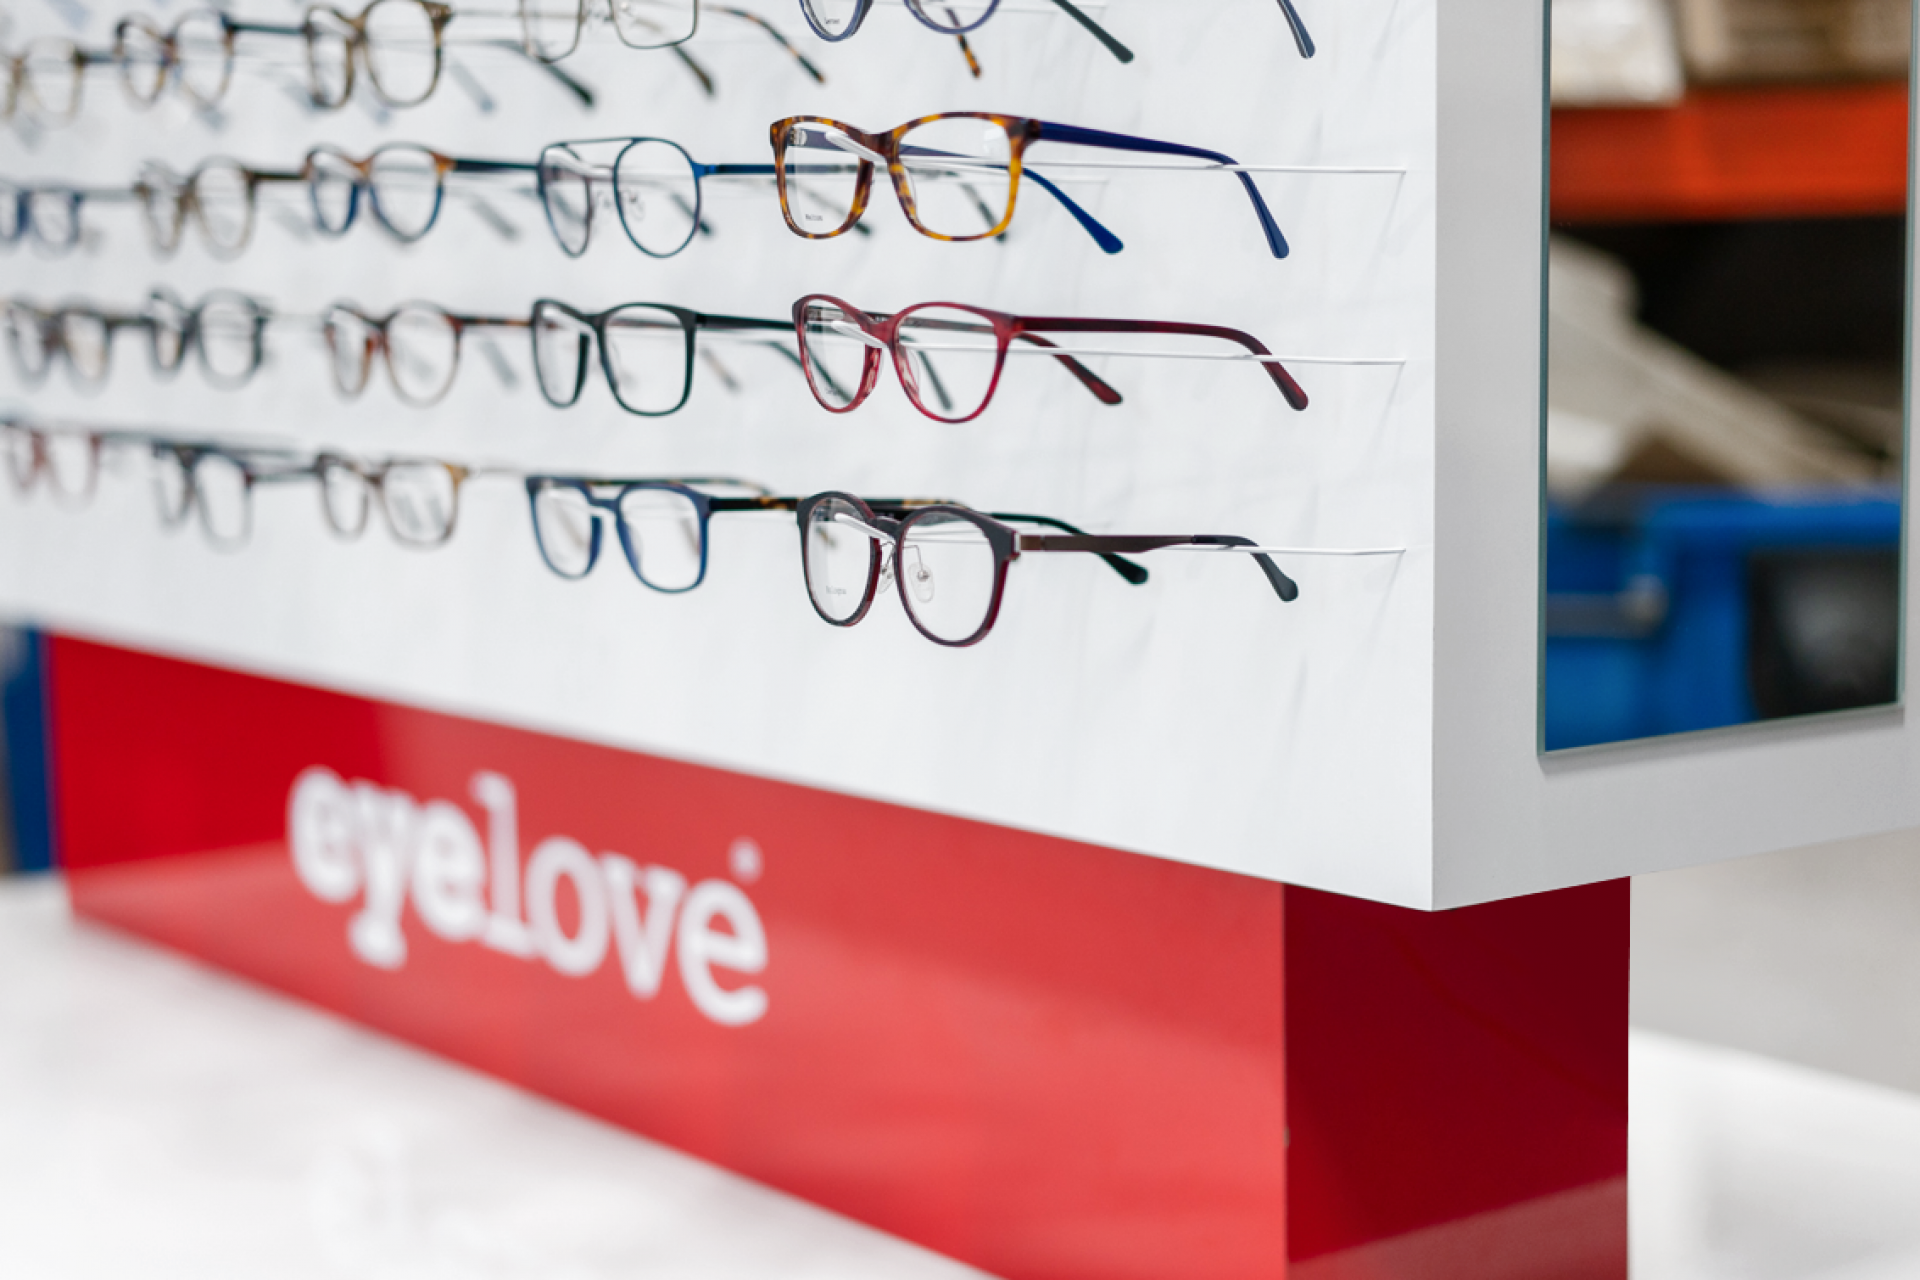 EYE LOVE - Drugstore Shop in Shop